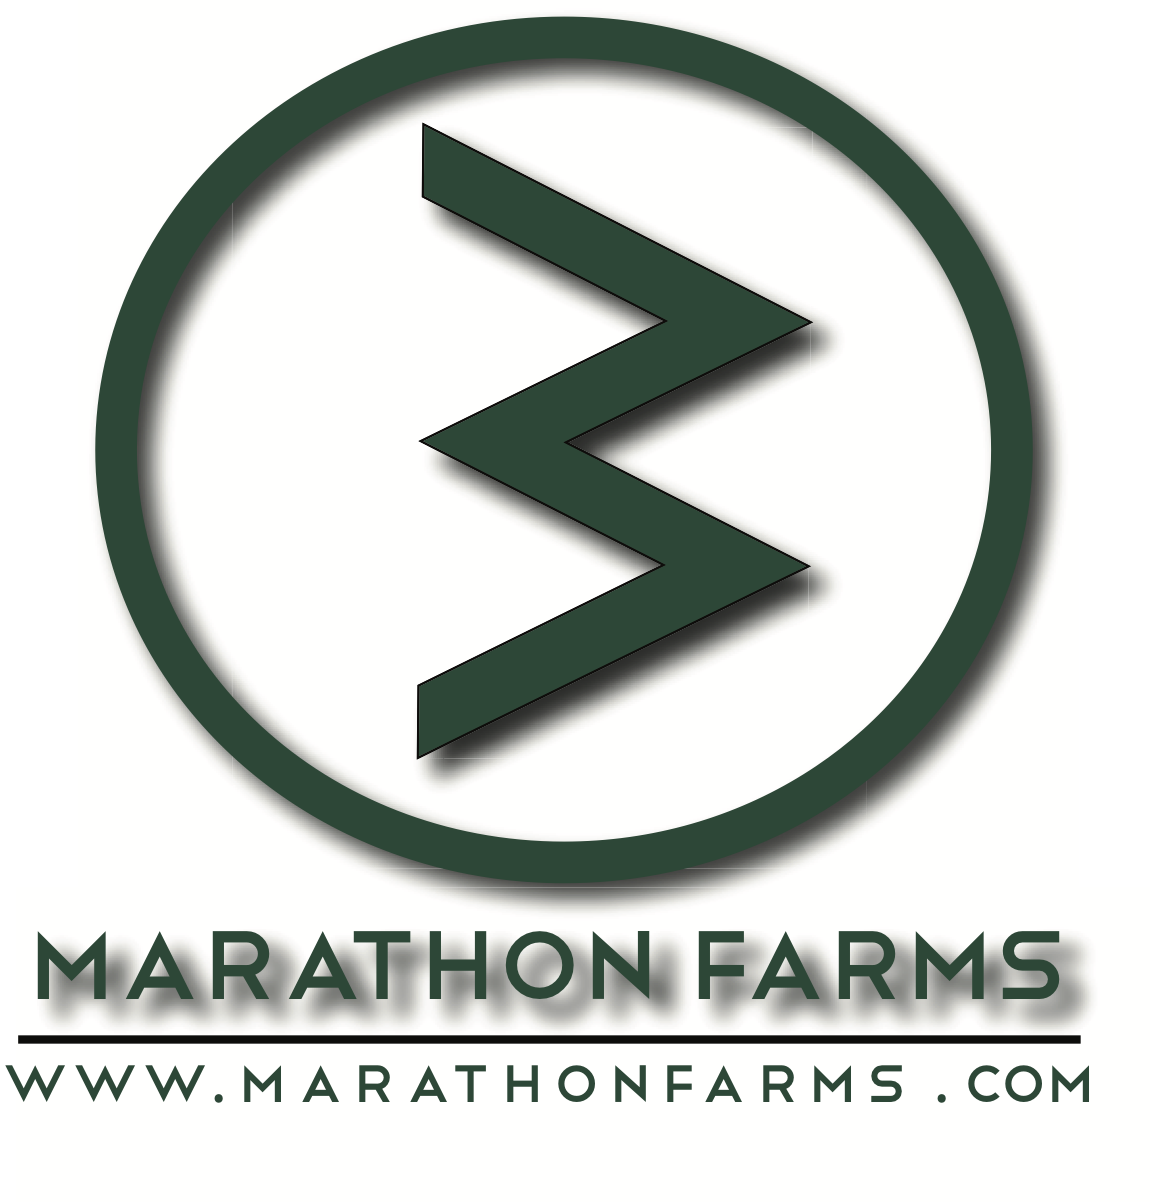 Marathon Farms, LLC primary image